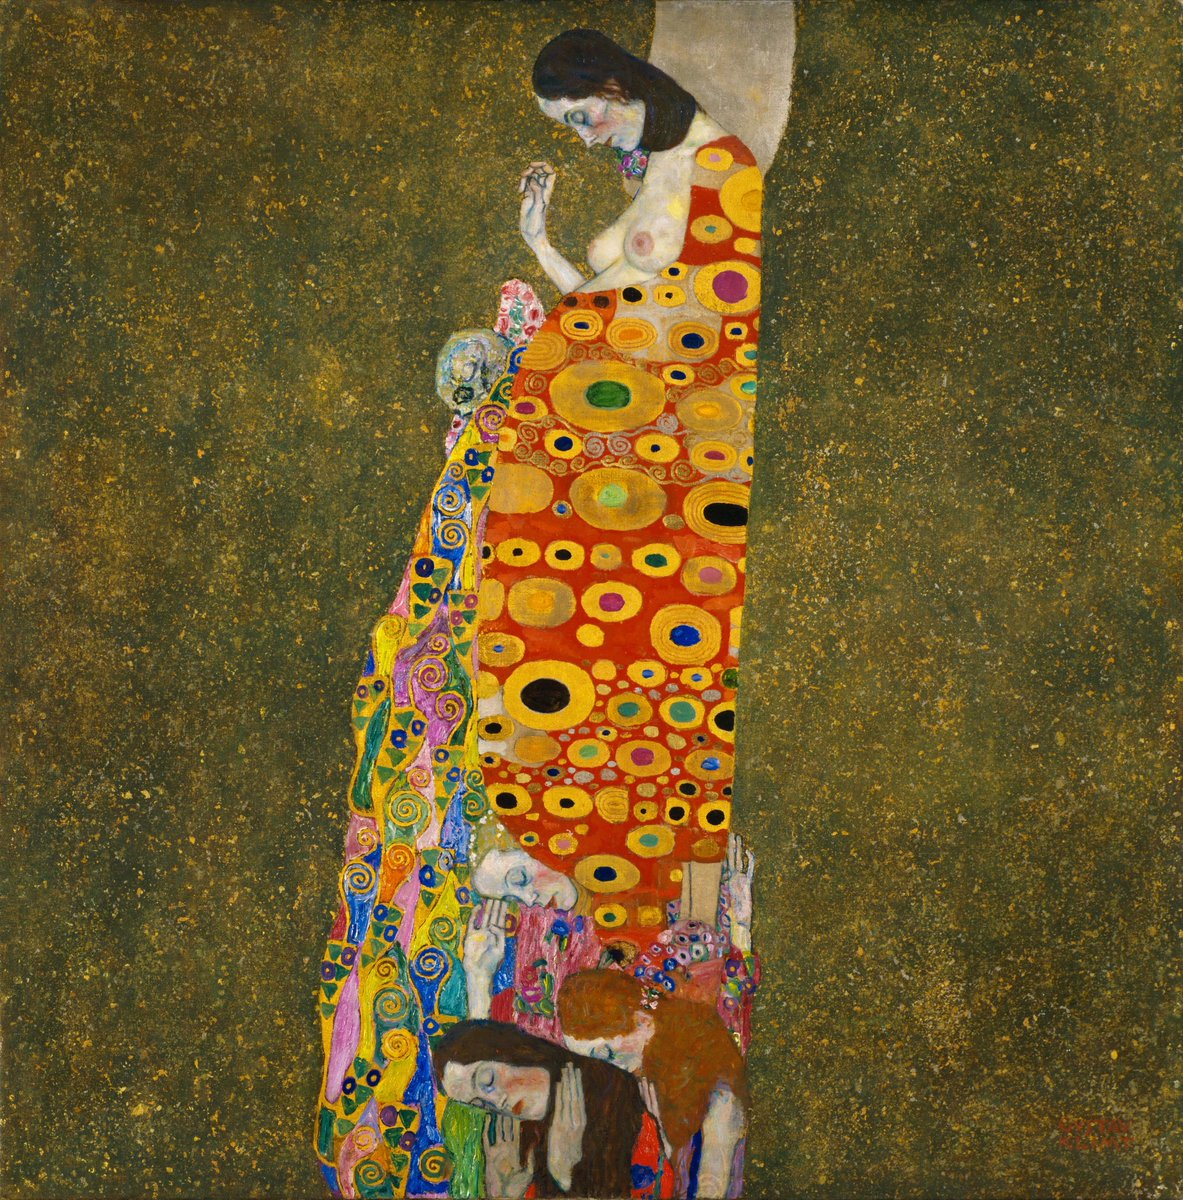 """""""Hope II, 1907–08, Museum of Modern Art"""" Gustav Klimt (July 14, 1862 – February 6, 1918) was an Austrian symbolist painter and one of the most prominent members of the Vienna Secession movement."""